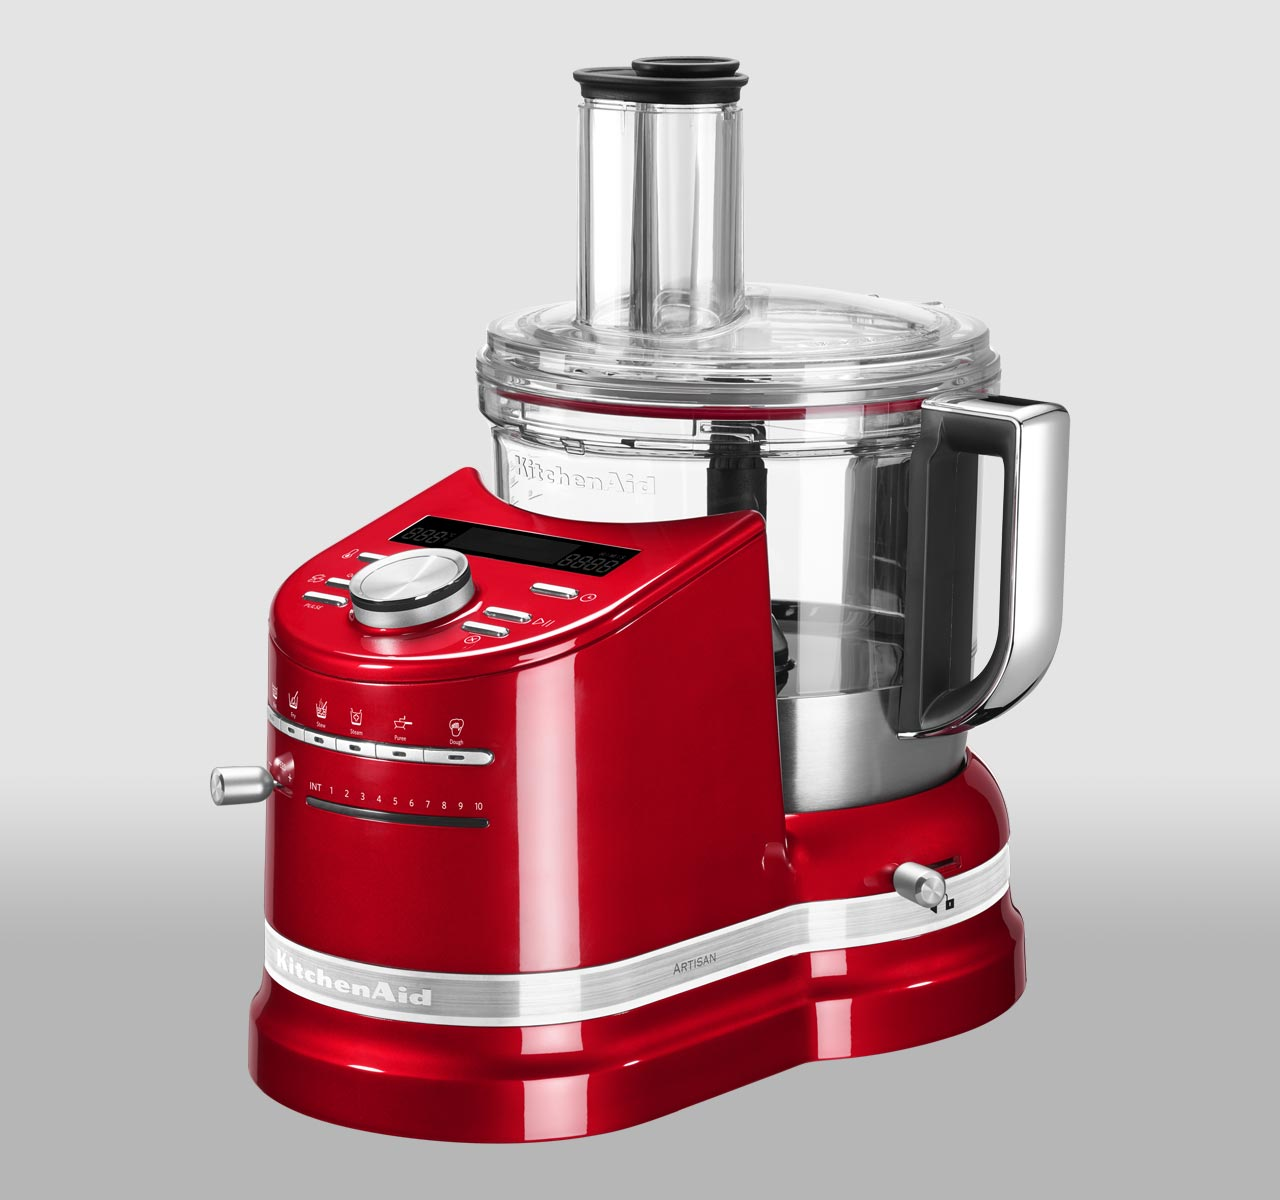 Cook processor homepage for Kitchenaid food processor